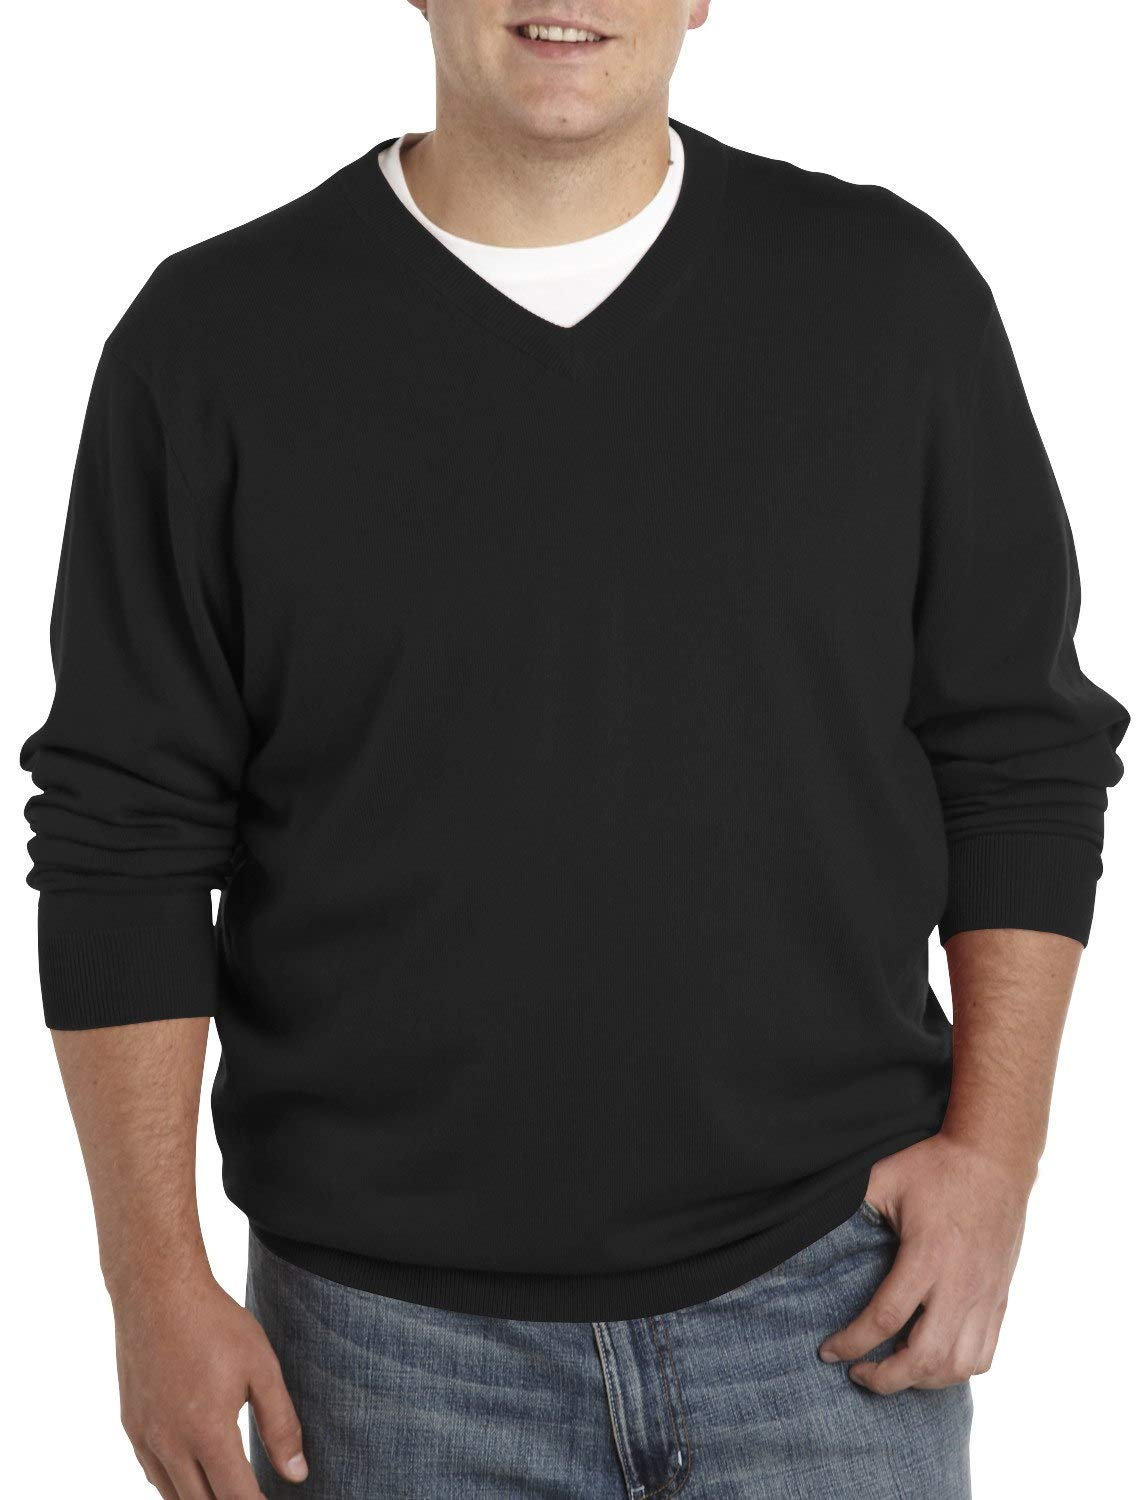 Rochester by DXL Big and Tall Cotton/Cashmere V-Neck Sweater, Black, 2XLT